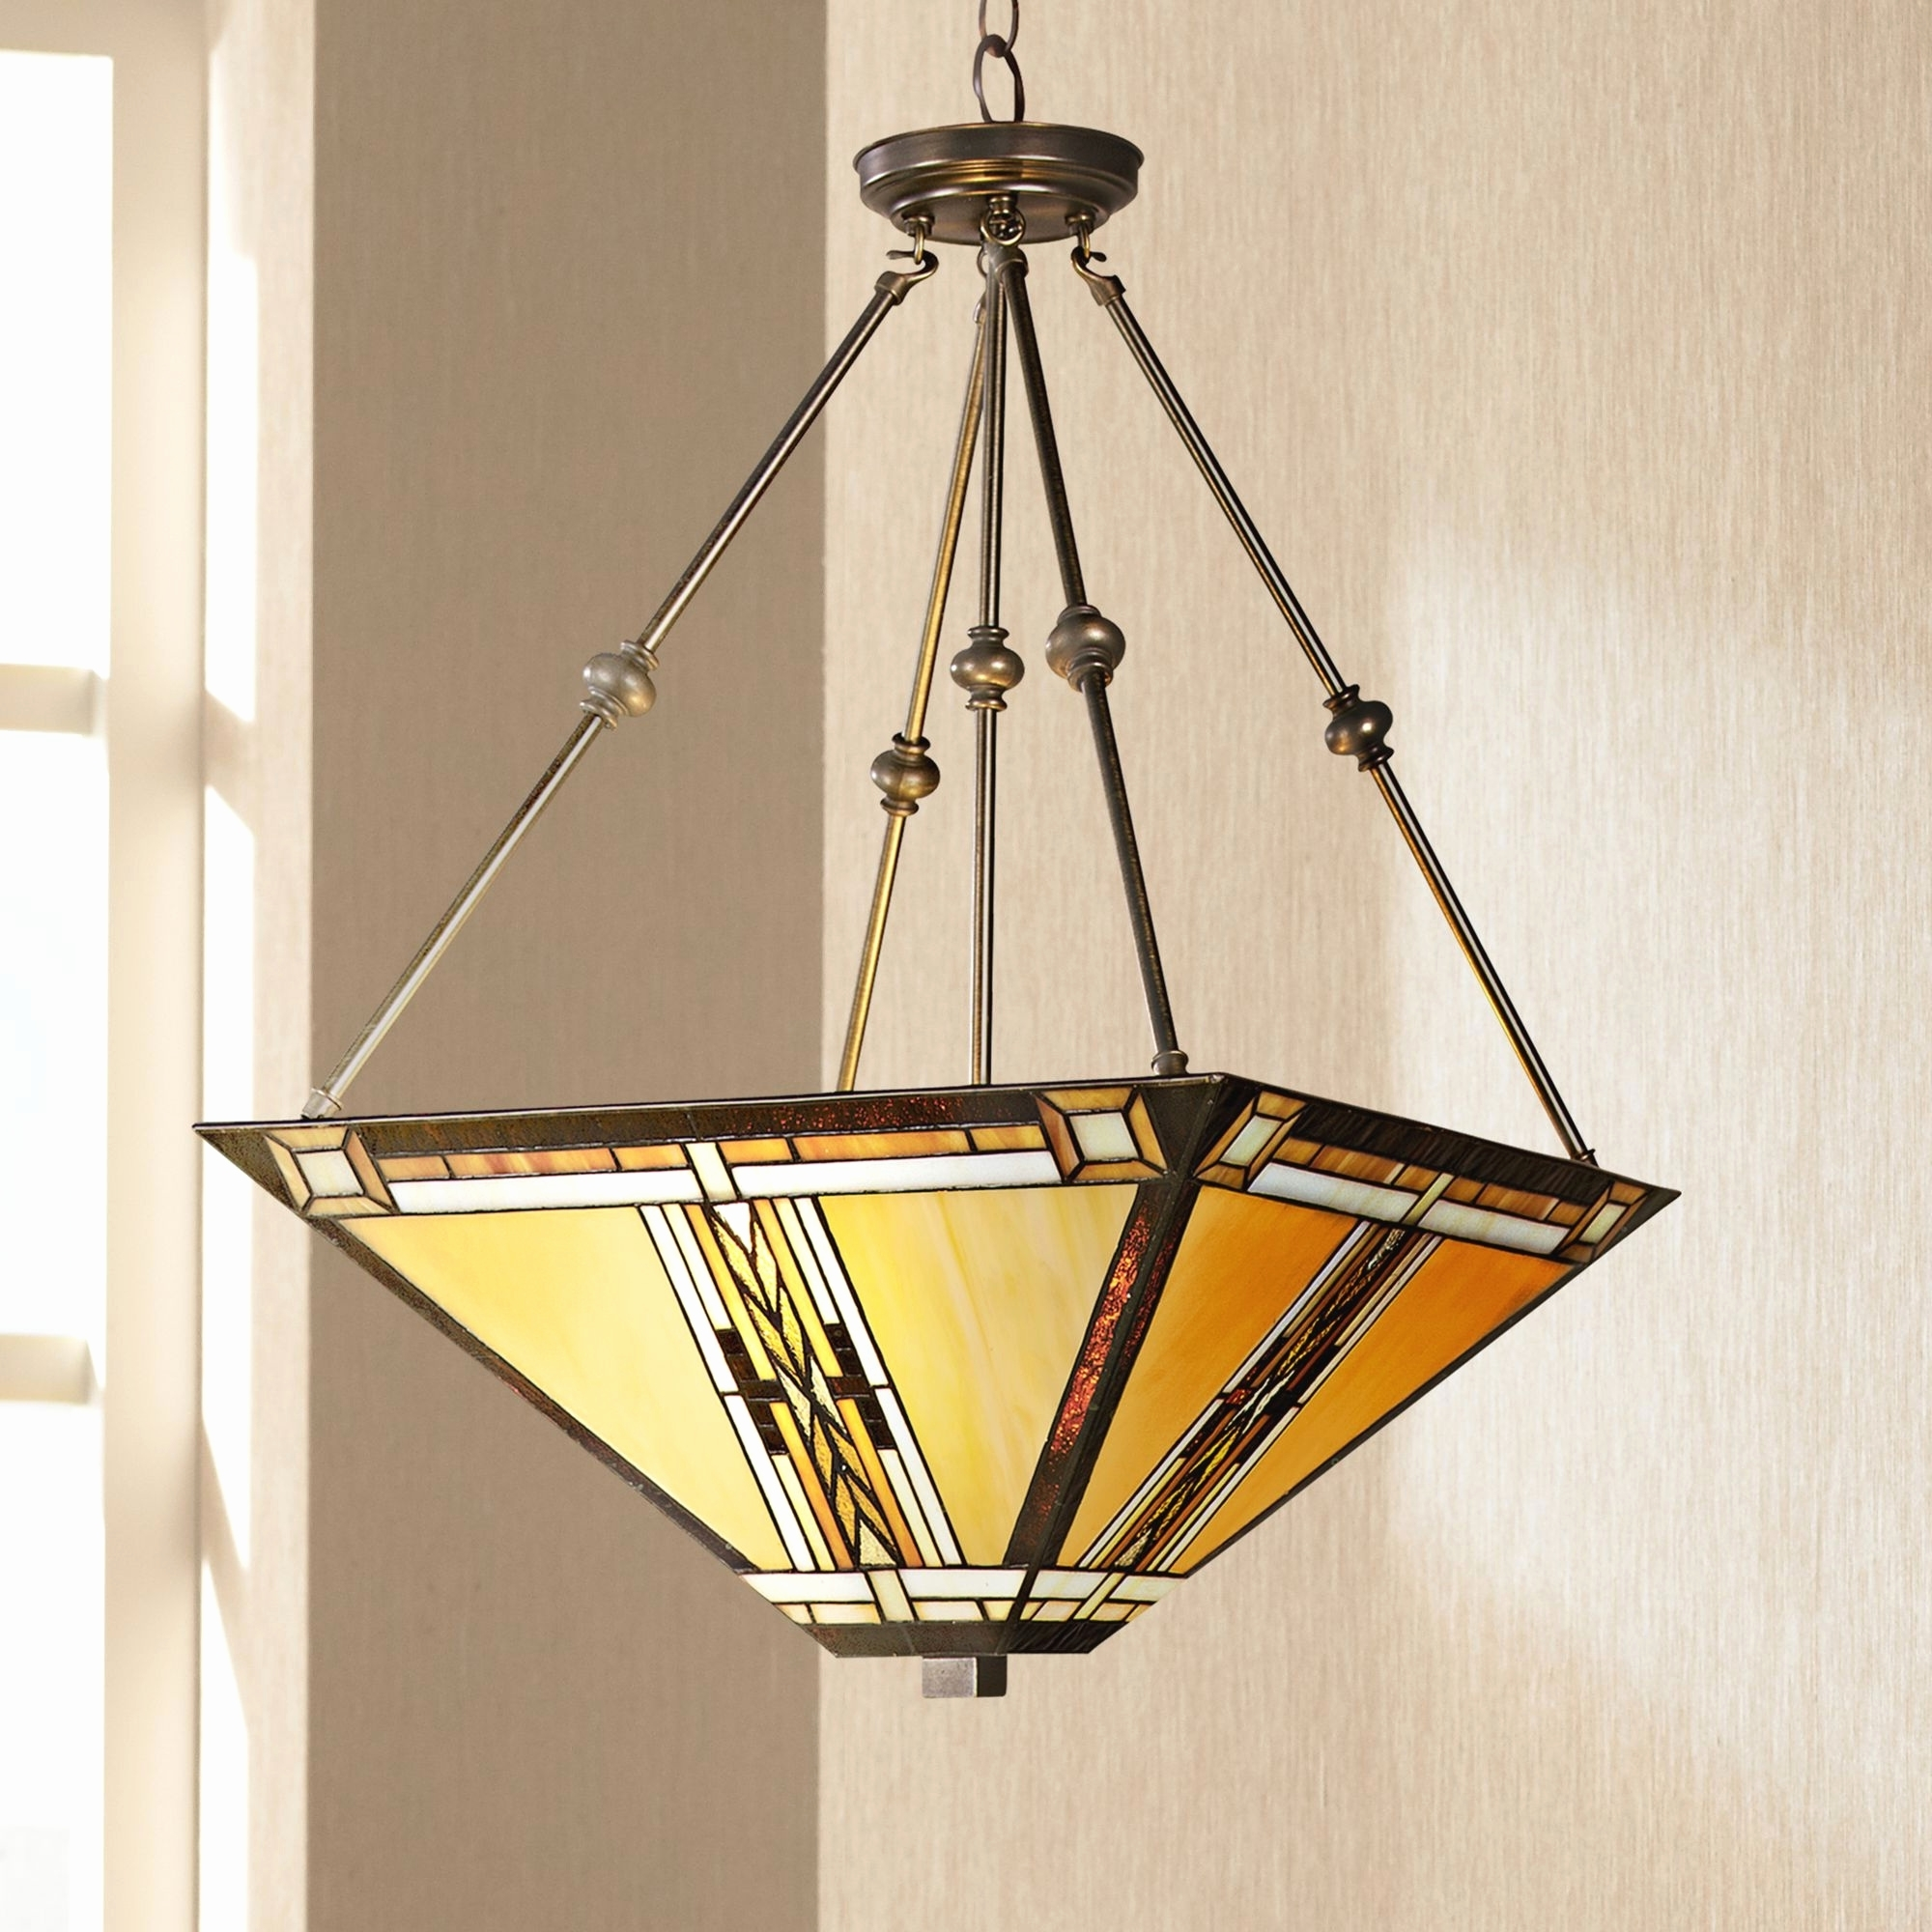 Well Known Mission Style Outdoor Ceiling Fans With Lights Pertaining To Mission Style Ceiling Lights Fans With Mini Pendant Outdoor Flush (View 18 of 20)